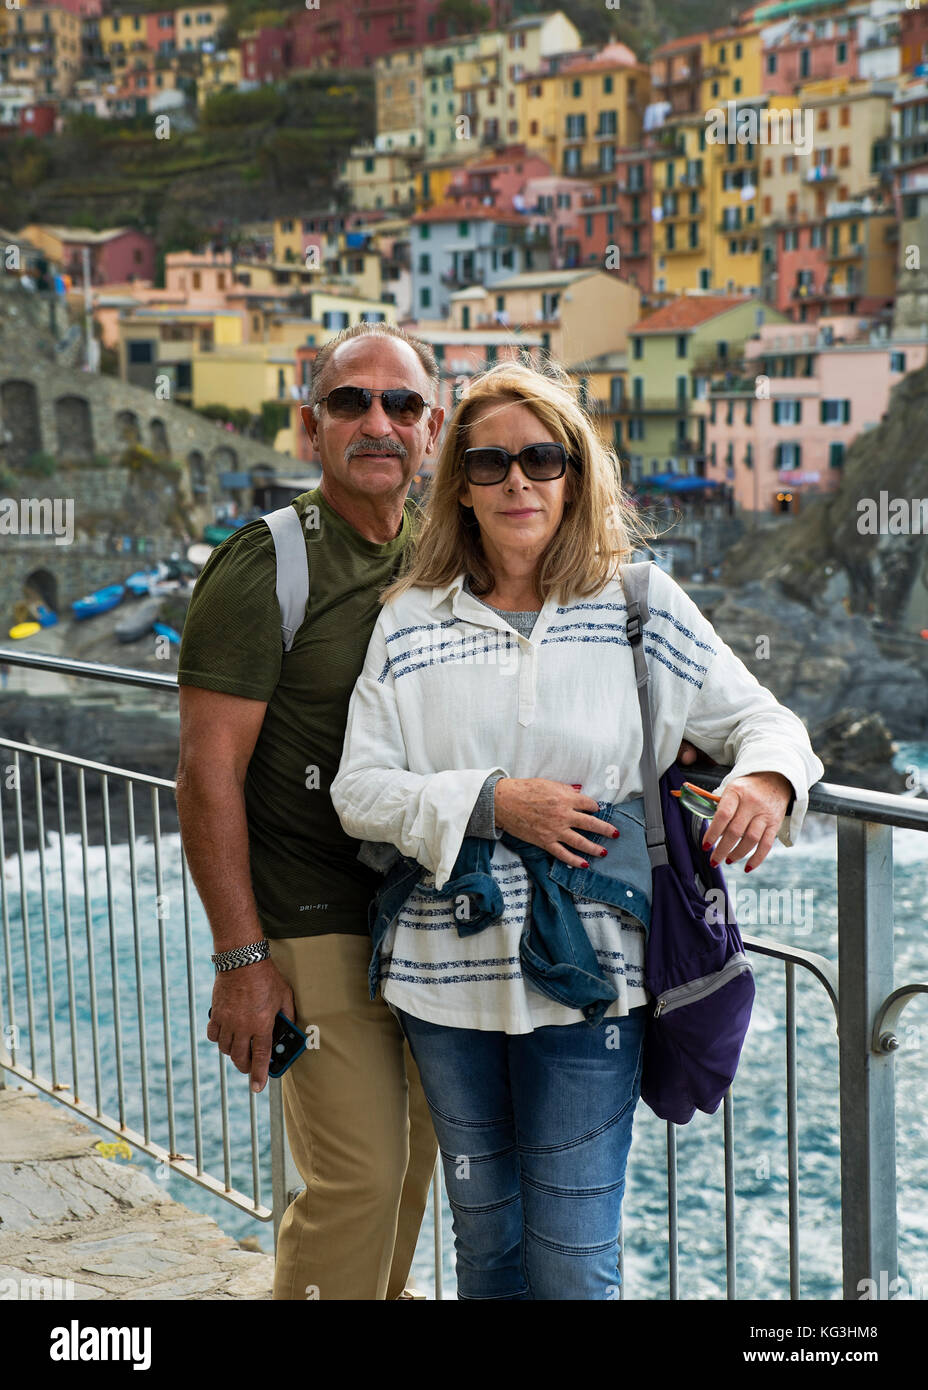 Couple poses for a snapshot while traveling, in Riomaggiore, Cinque Terre, Italy. - Stock Image